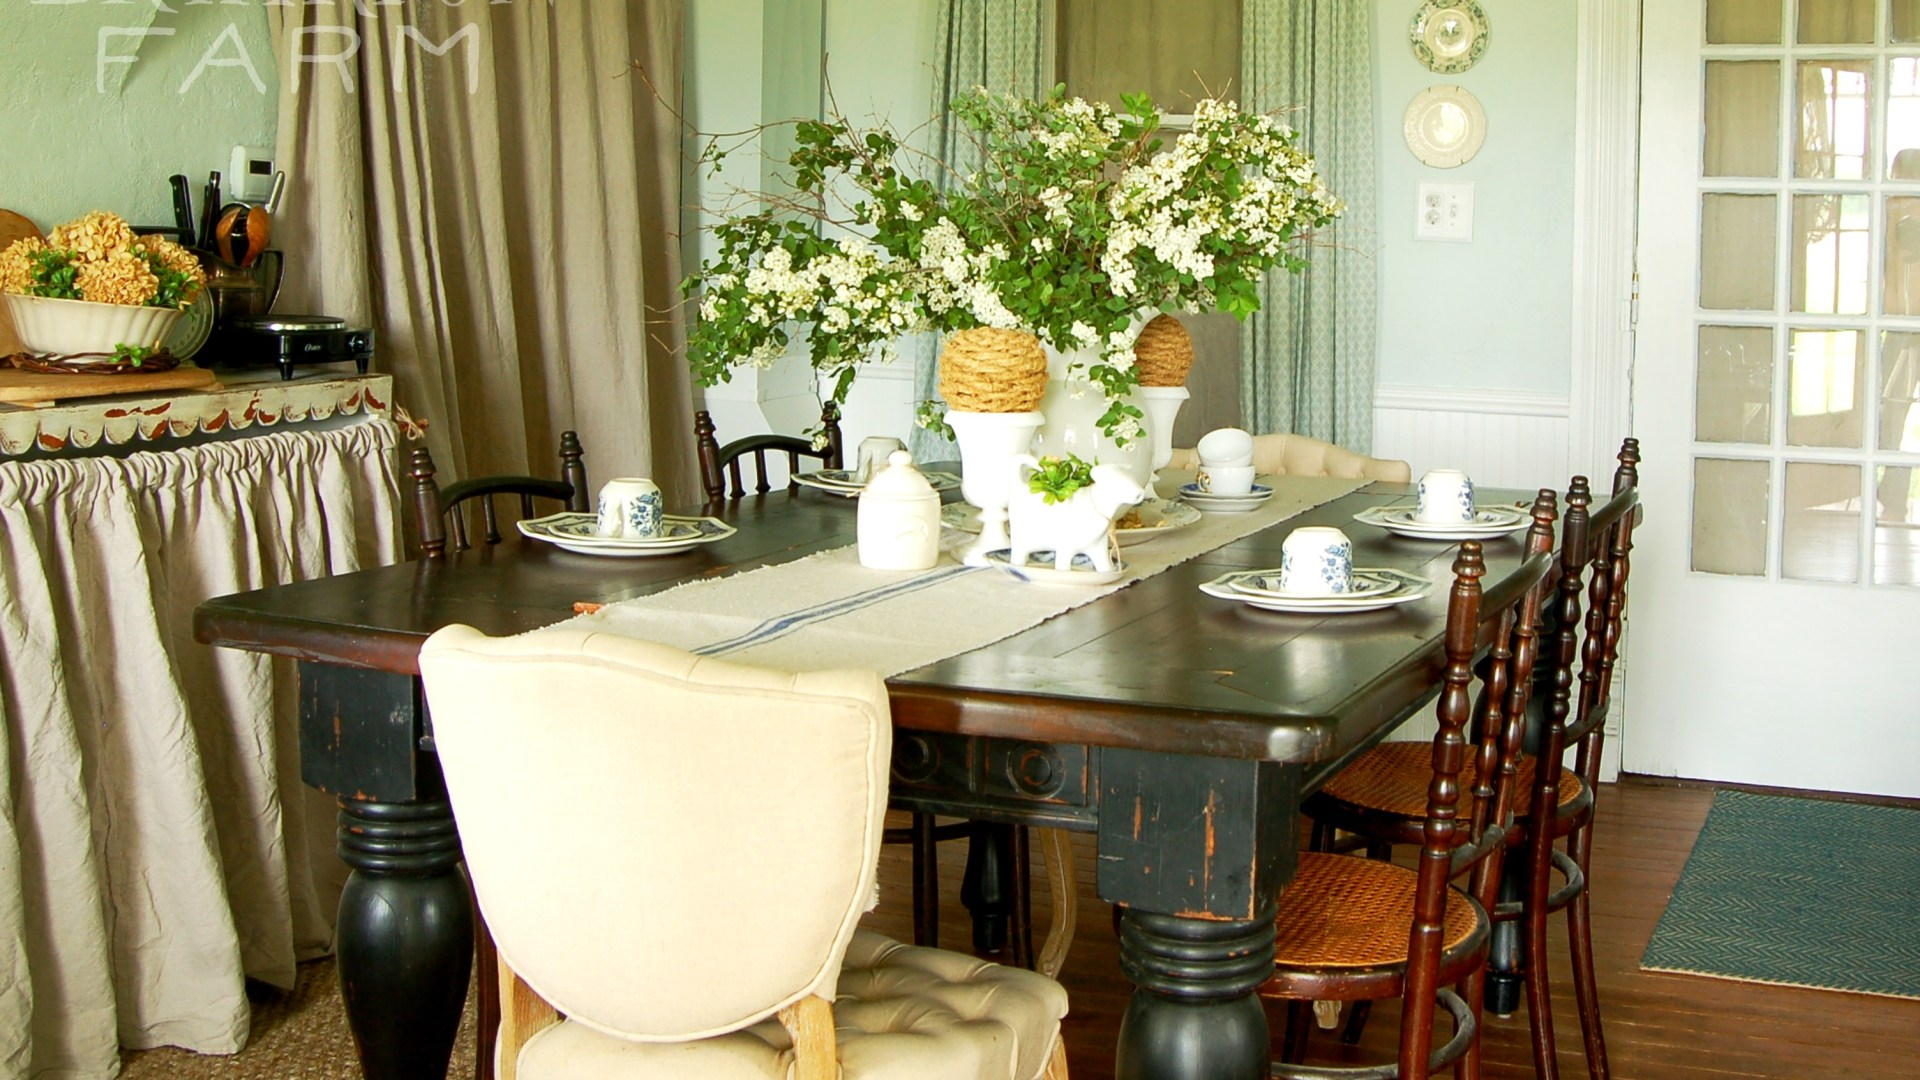 Our Spring Dining Room: Dining Room Spring Update